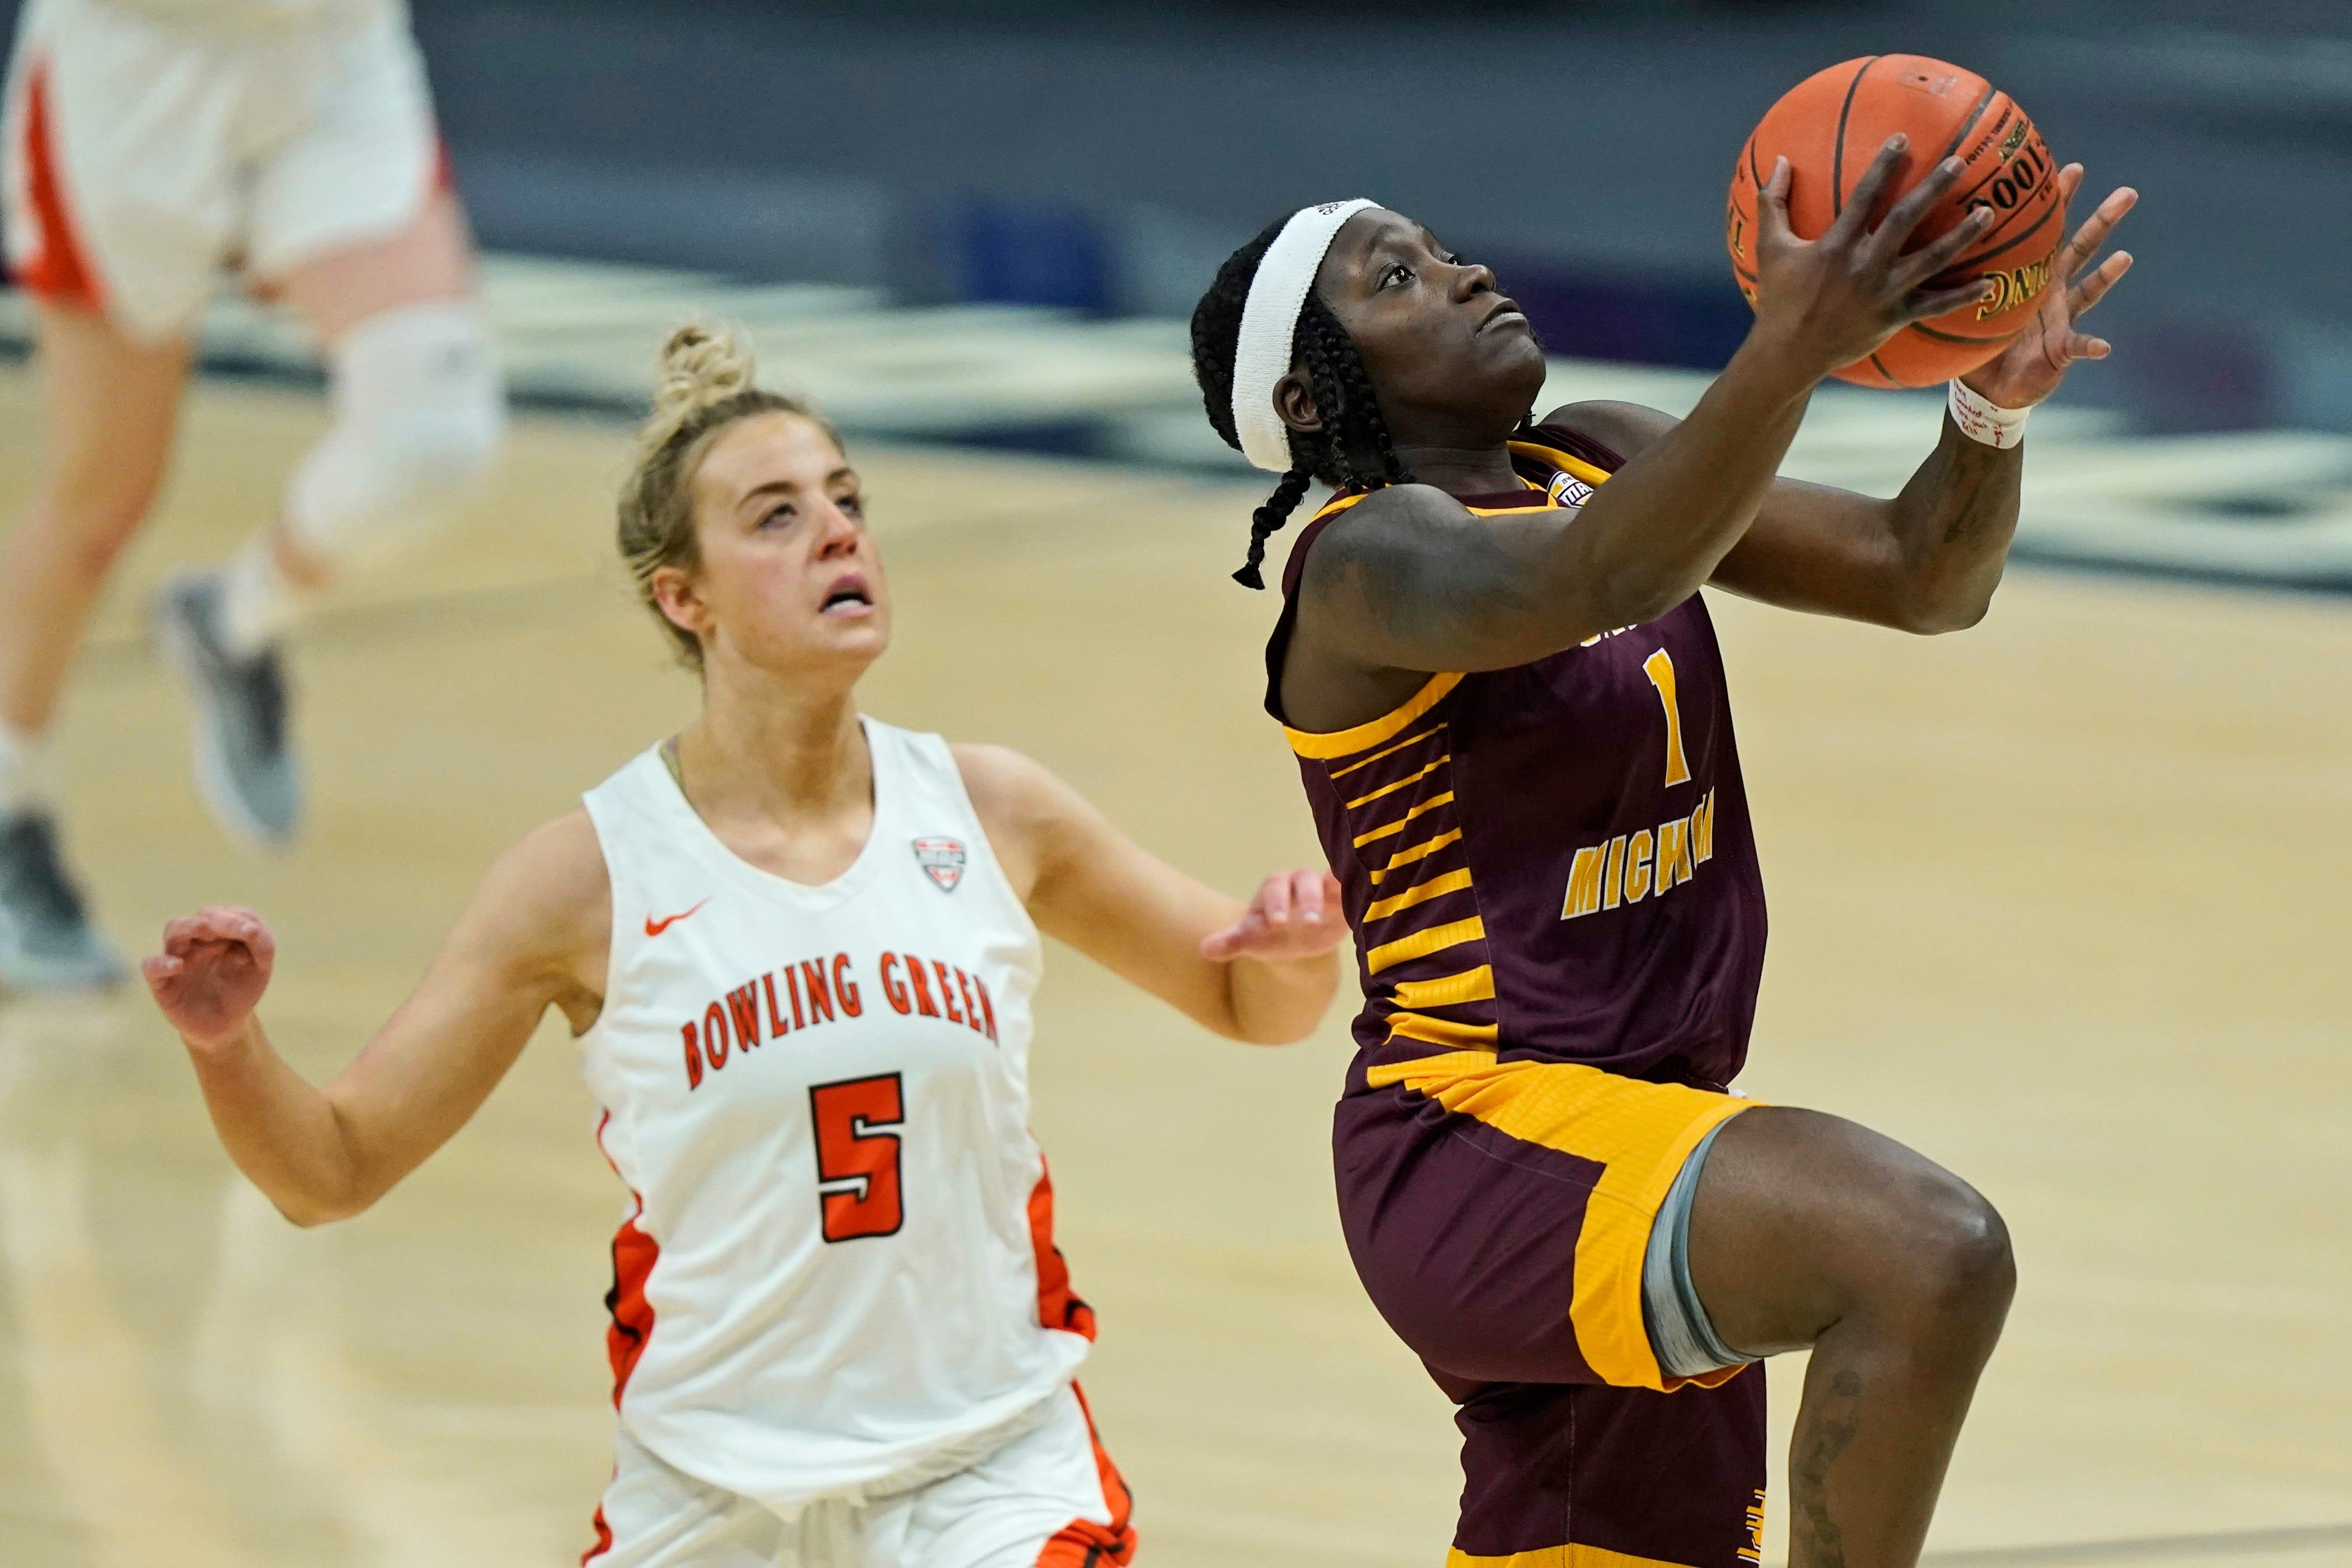 Central Michigan's Micaela Kelly drives to the basket against Bowling Green's Elissa Brett during the first half of CMU's 77-72 win in the MAC tournament final on Saturday, March 13, 2021, in Cleveland.